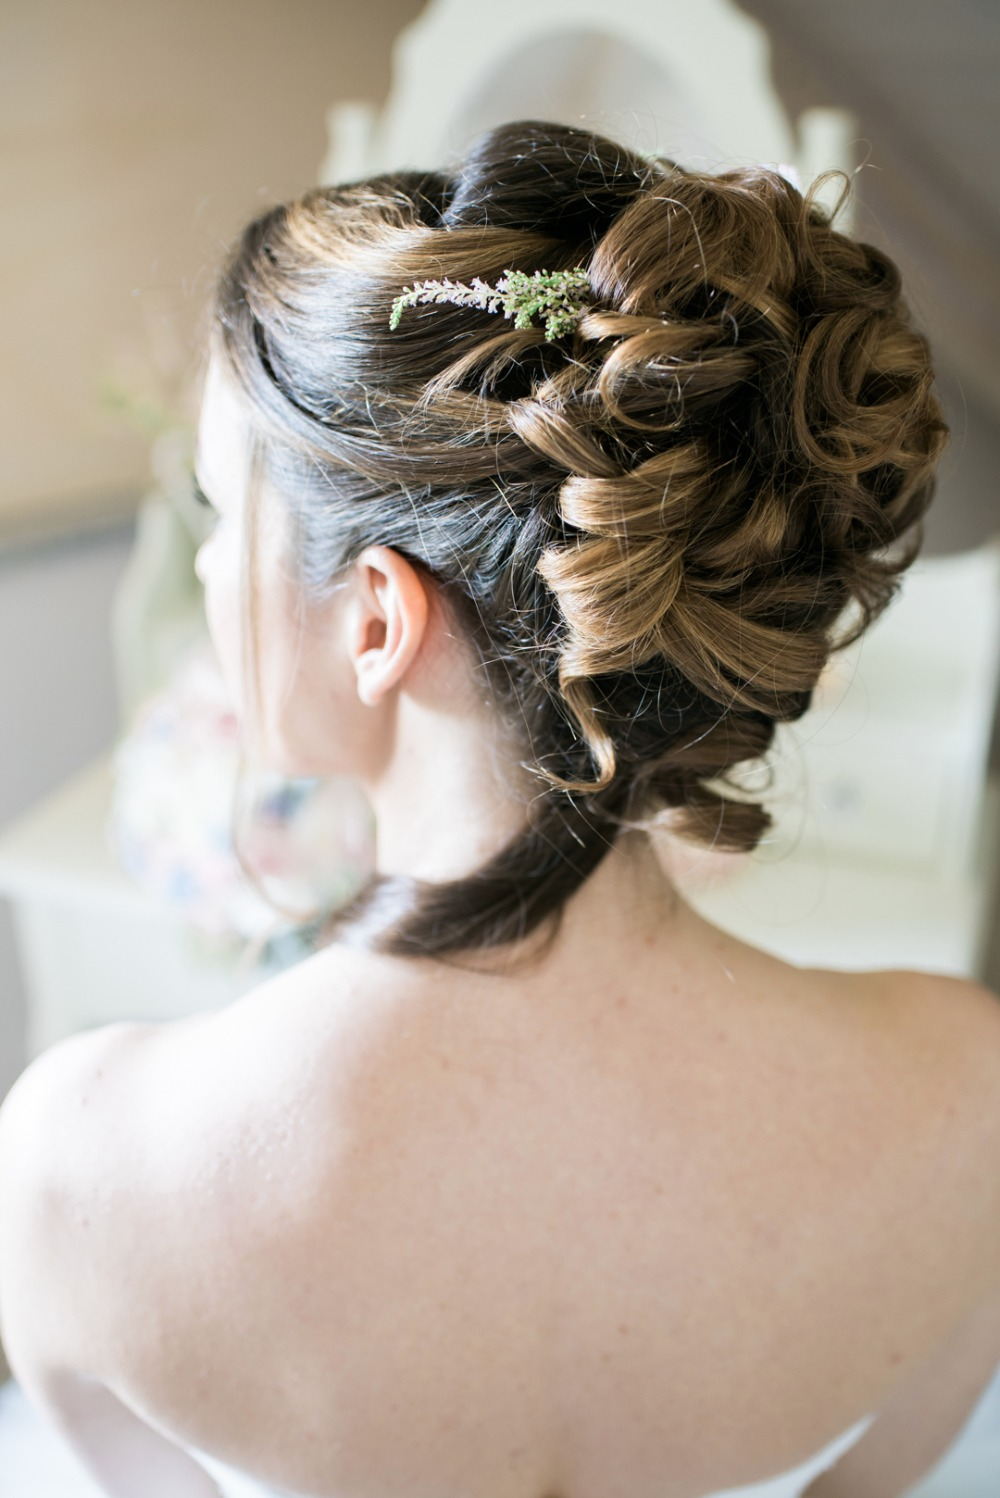 beautiful wedding hair updo idea